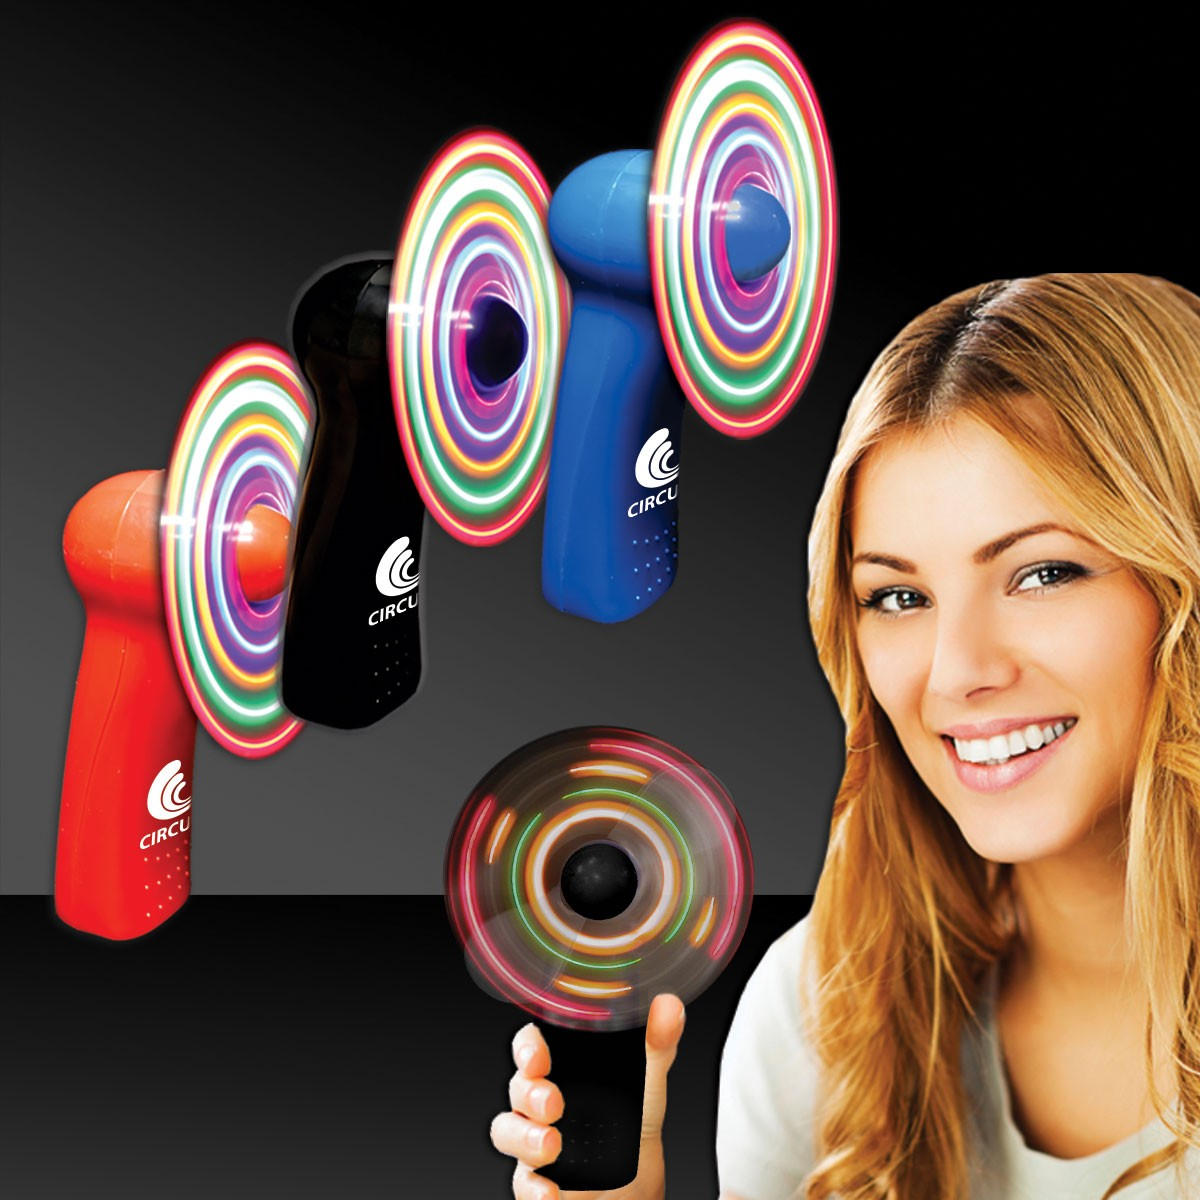 "4"" - Light Up Hand Held Imprintable Fans - Variety of Colors"